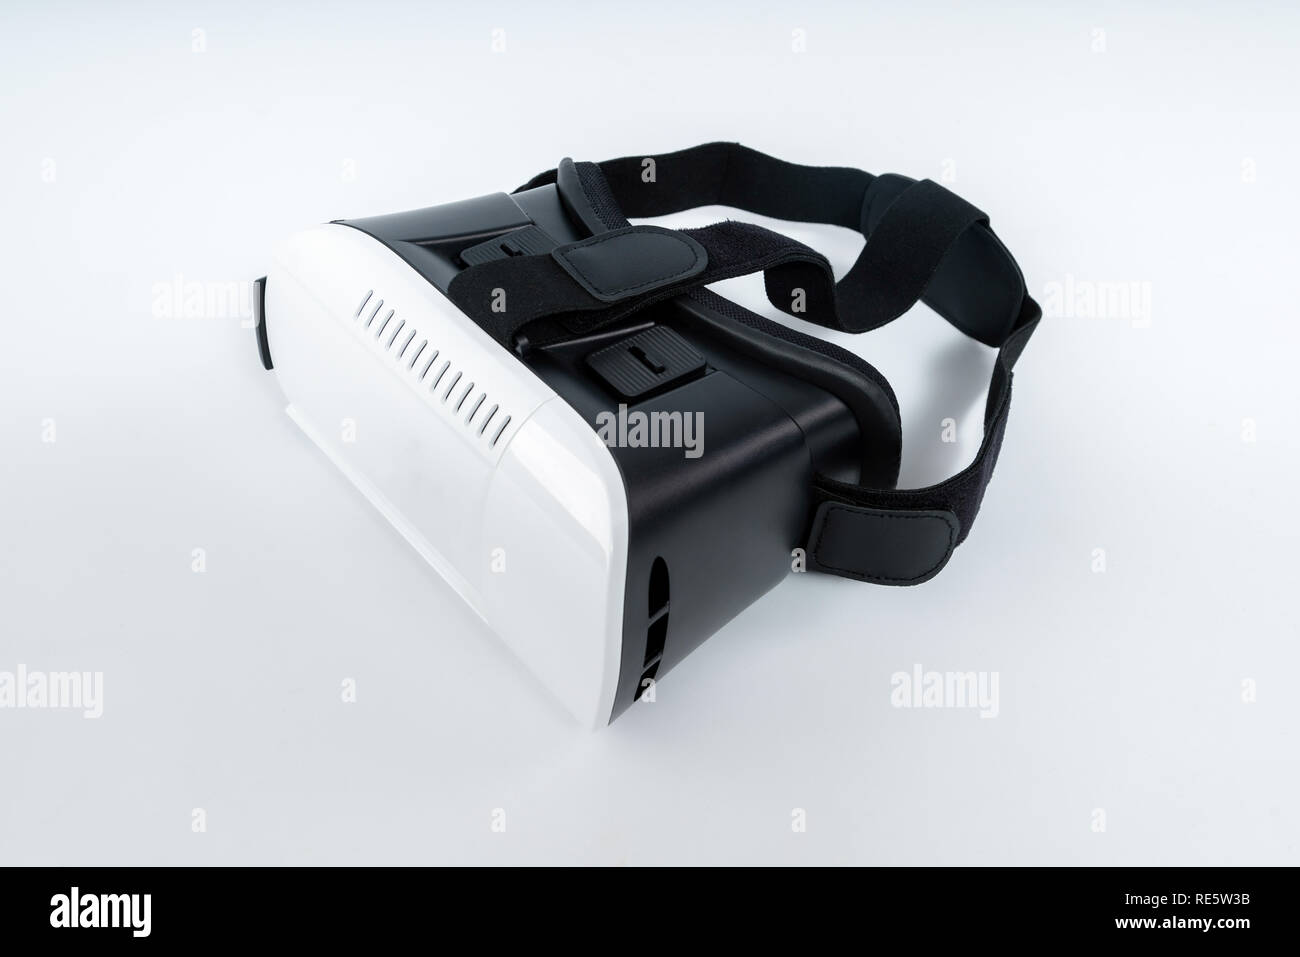 80d532fba7e6 Virtual reality VR goggles isolated on white background - Stock Image